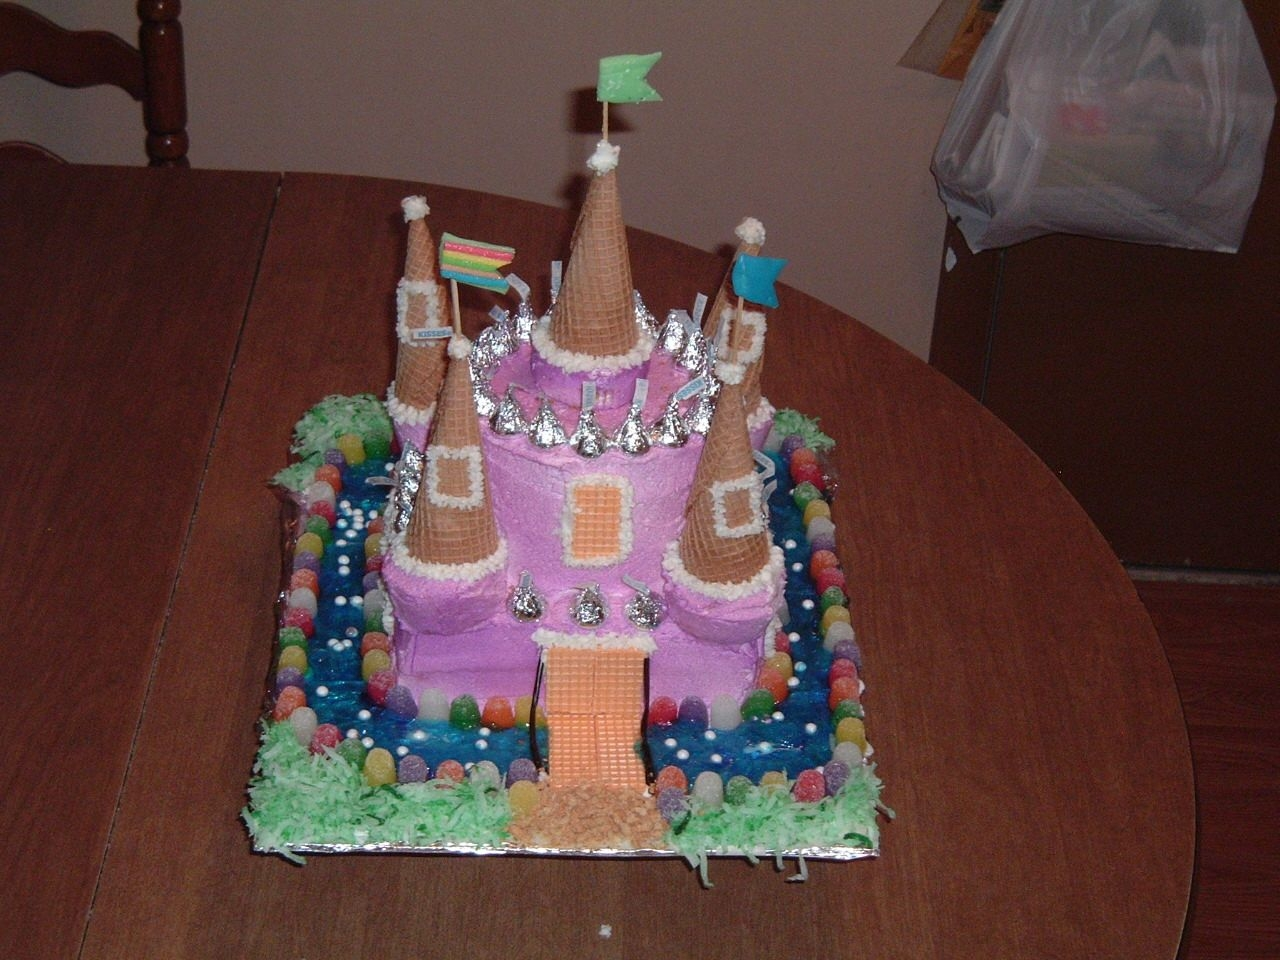 Enchanted Magical Castle The castle has 5 towers made of ice cream cones, the main body is white cake with white icing. I air brushed the cake to a light purple....